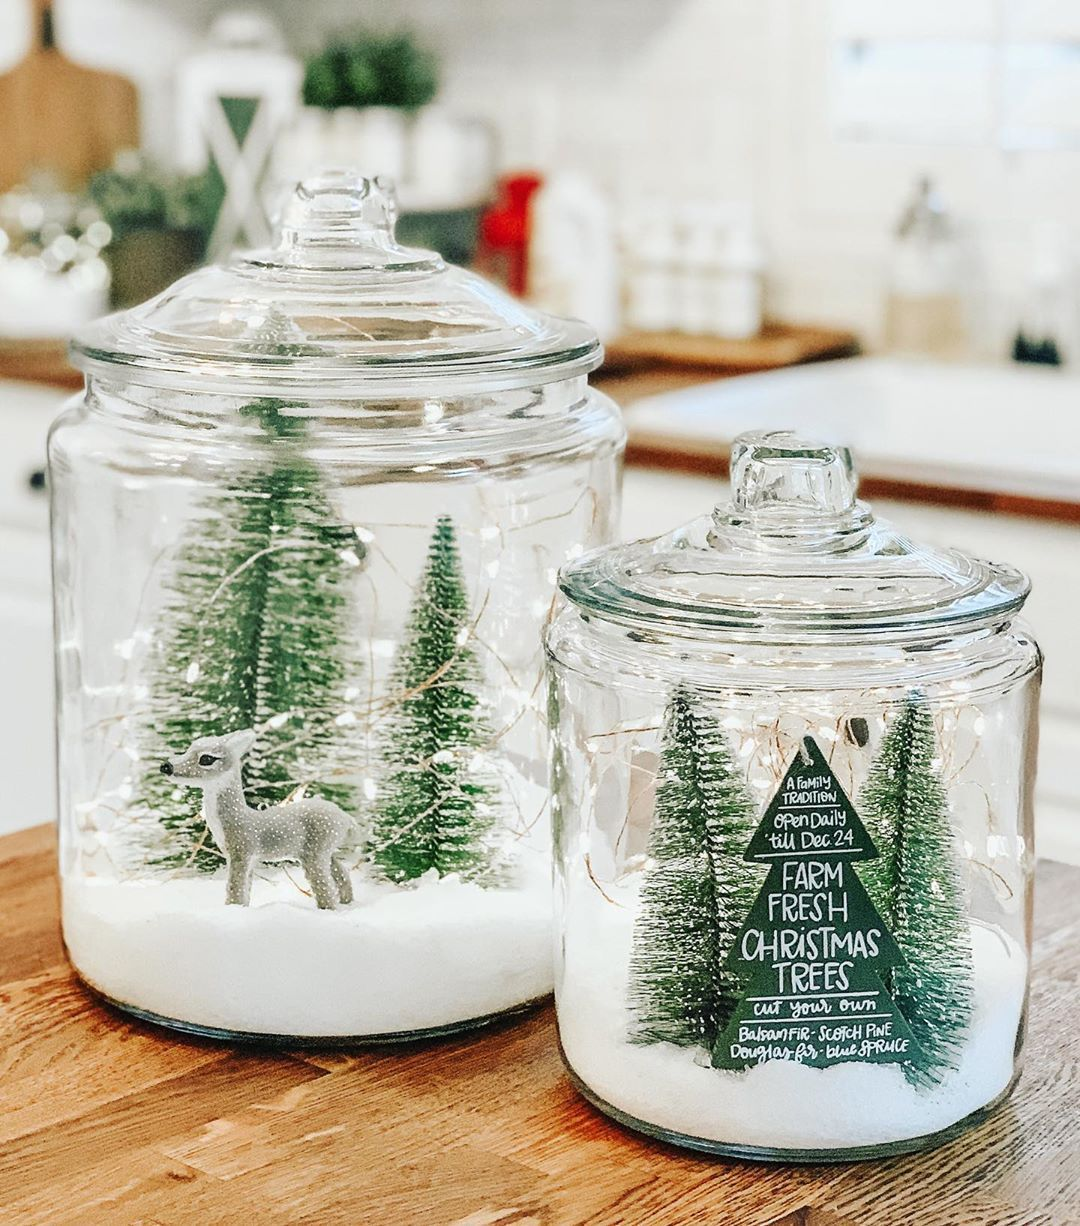 22 Hostess Christmas Jar Gift Ideas For This Holiday Season The Creatives Hour In 2020 Christmas Jar Gifts Christmas Jars Cute Christmas Decorations